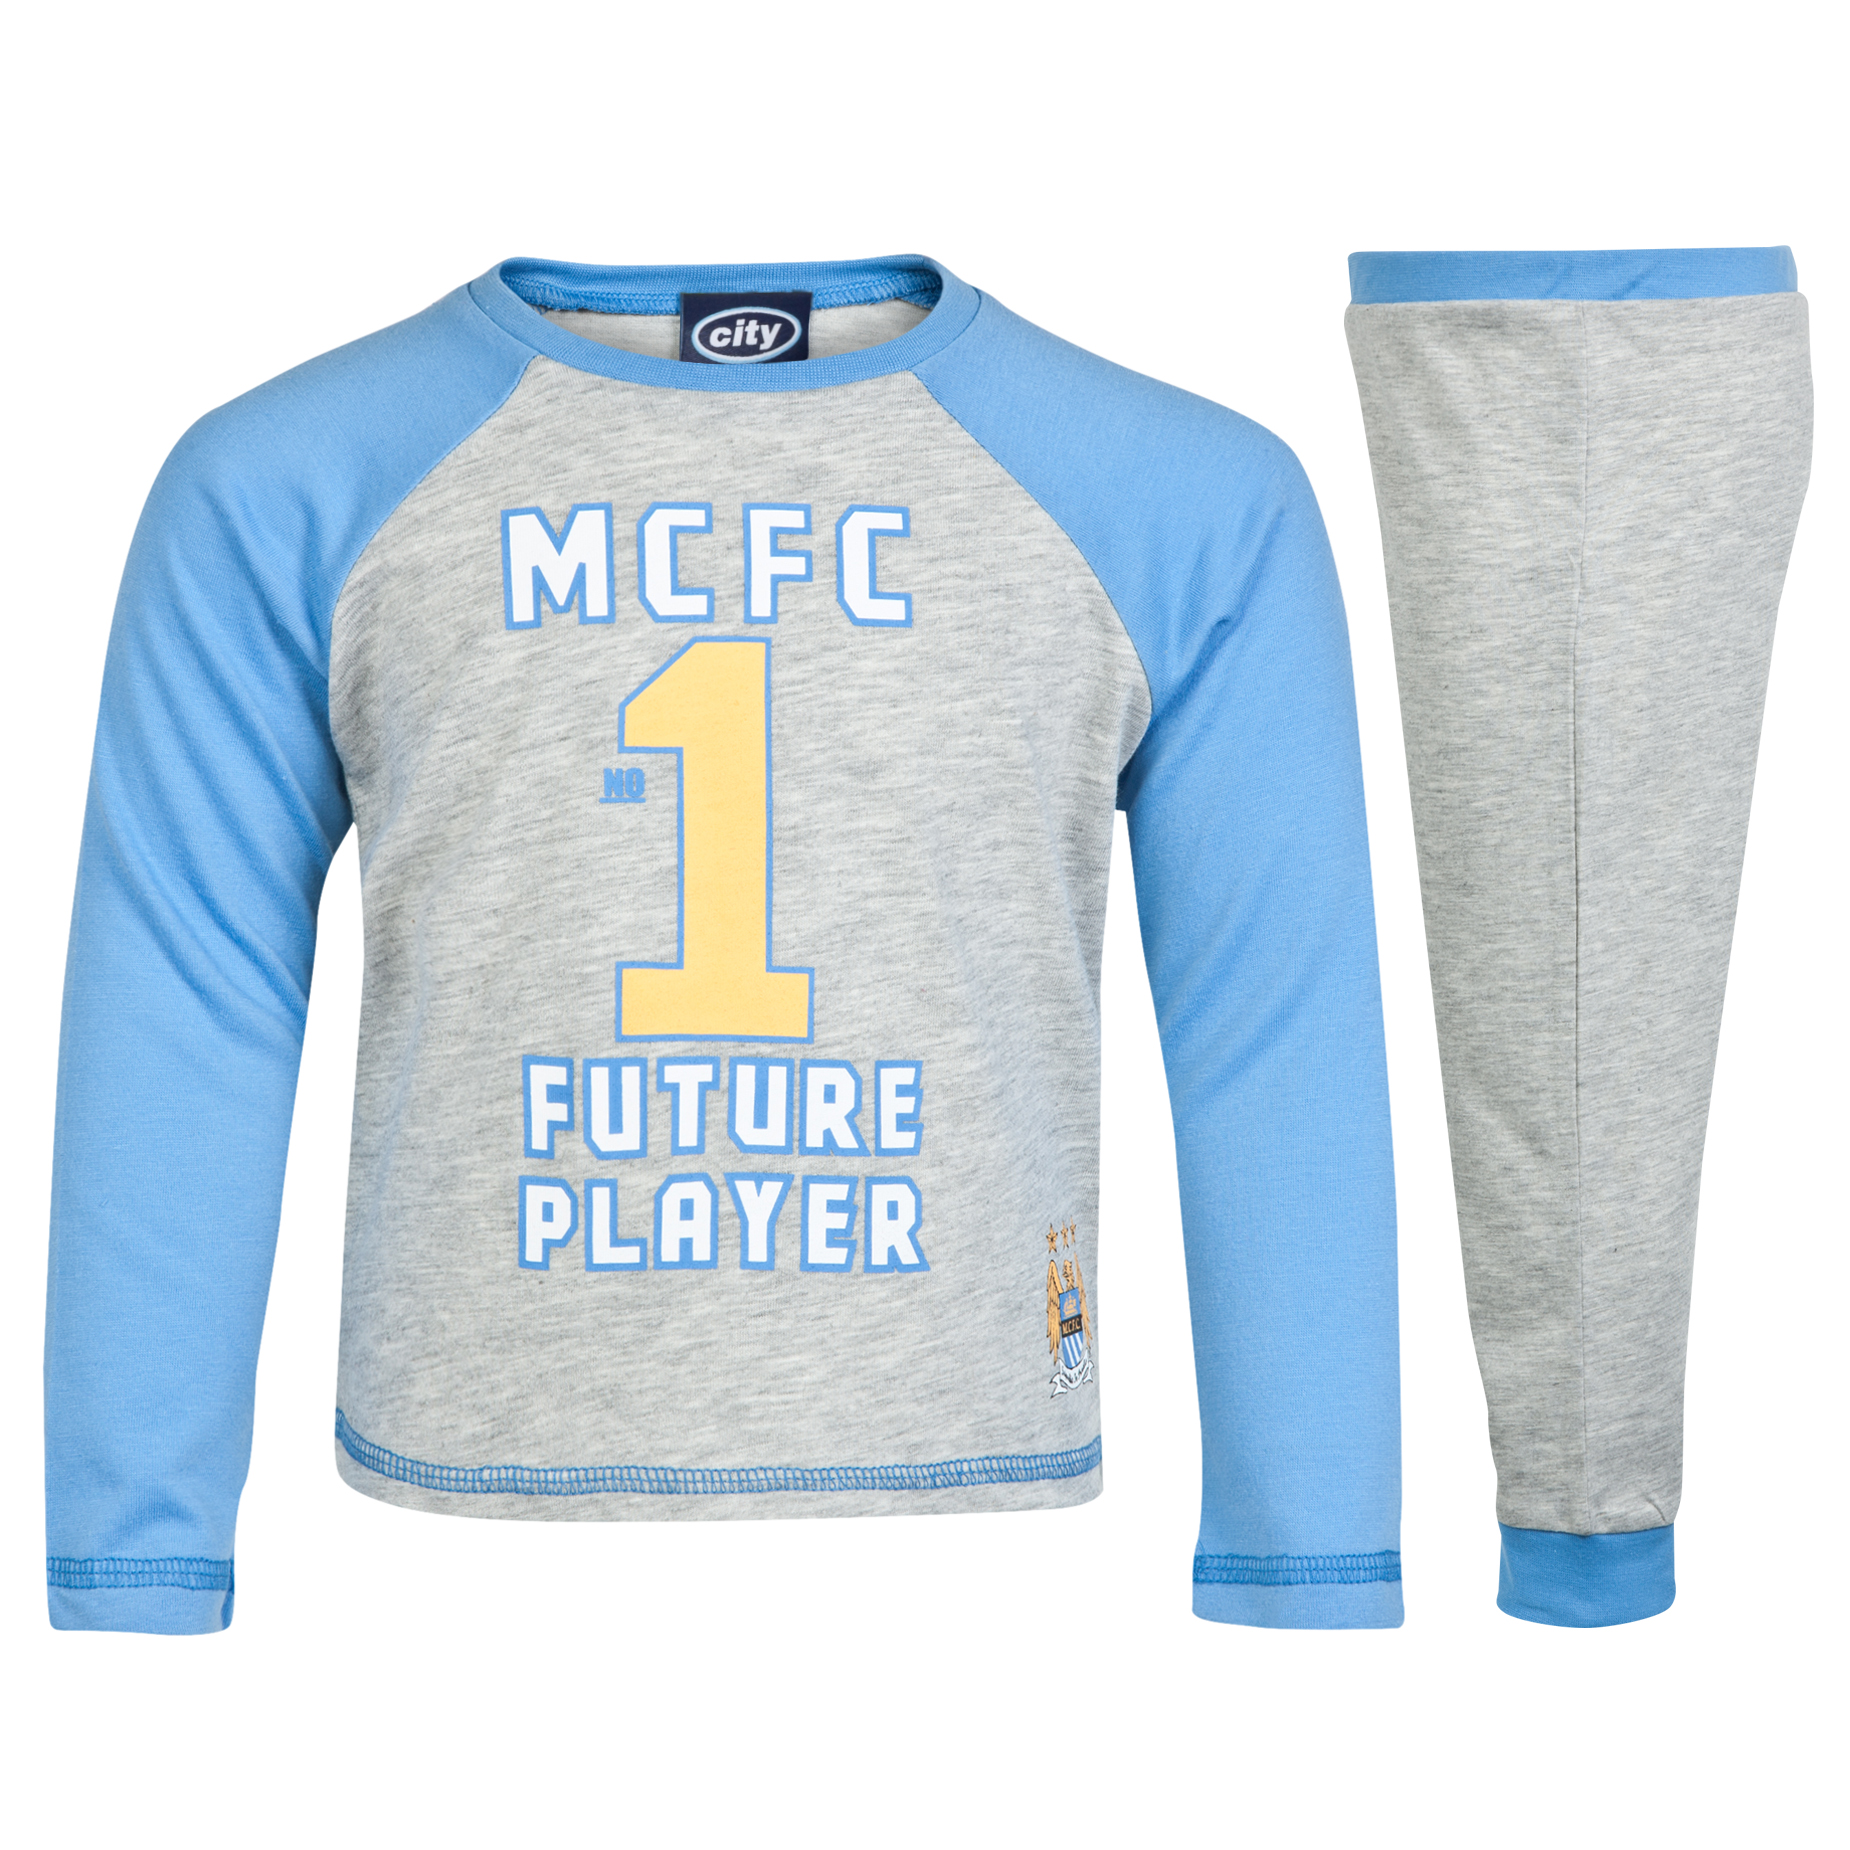 Manchester City Pyjamas - Grey - Infant Boys